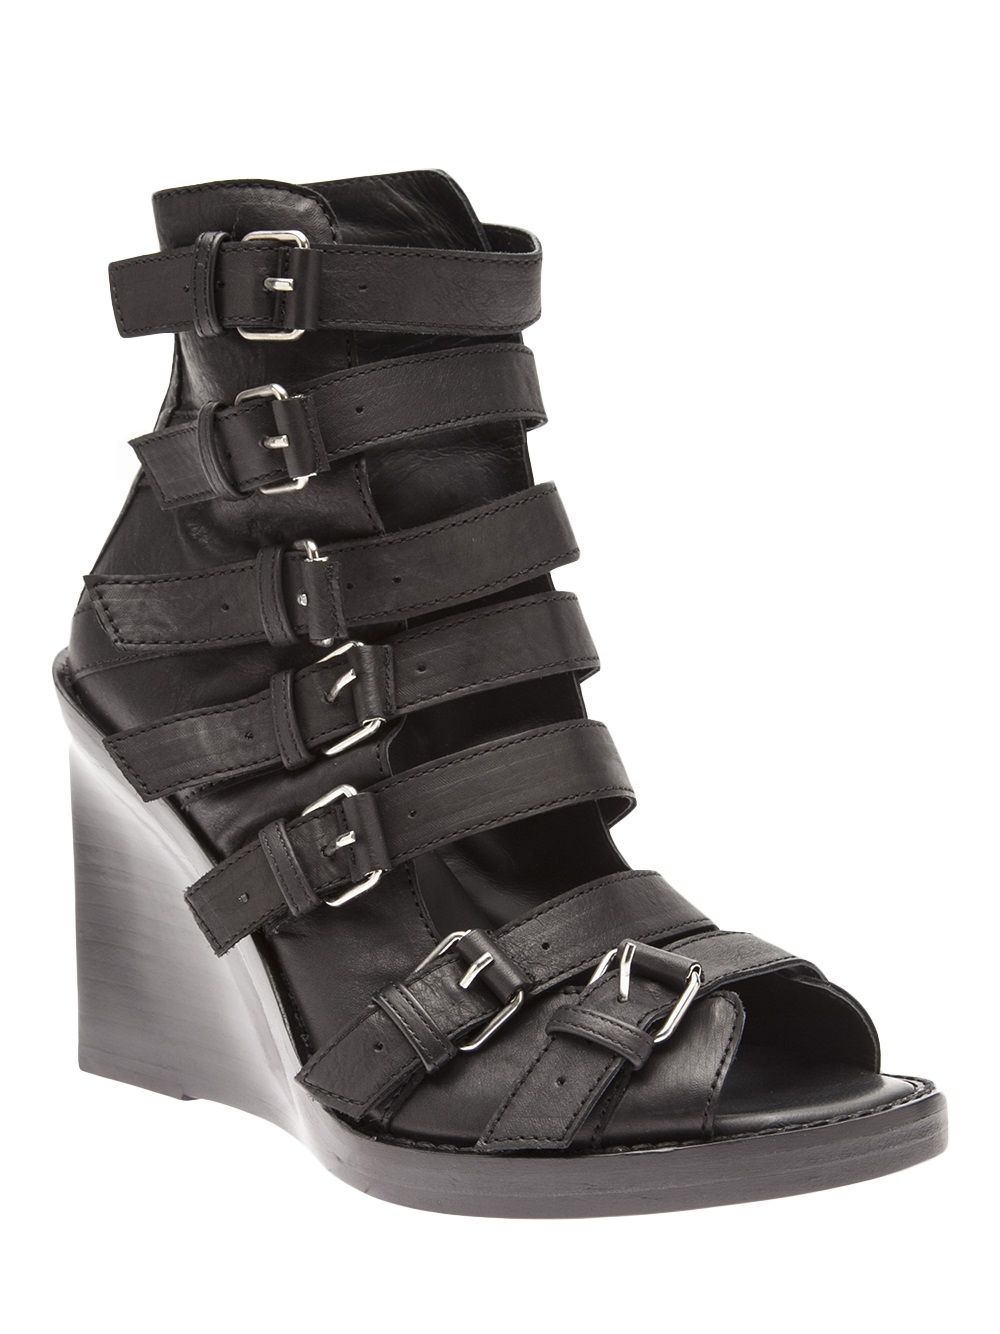 Lyst Ann Demeulemeester Strappy Wedge Sandal In Black